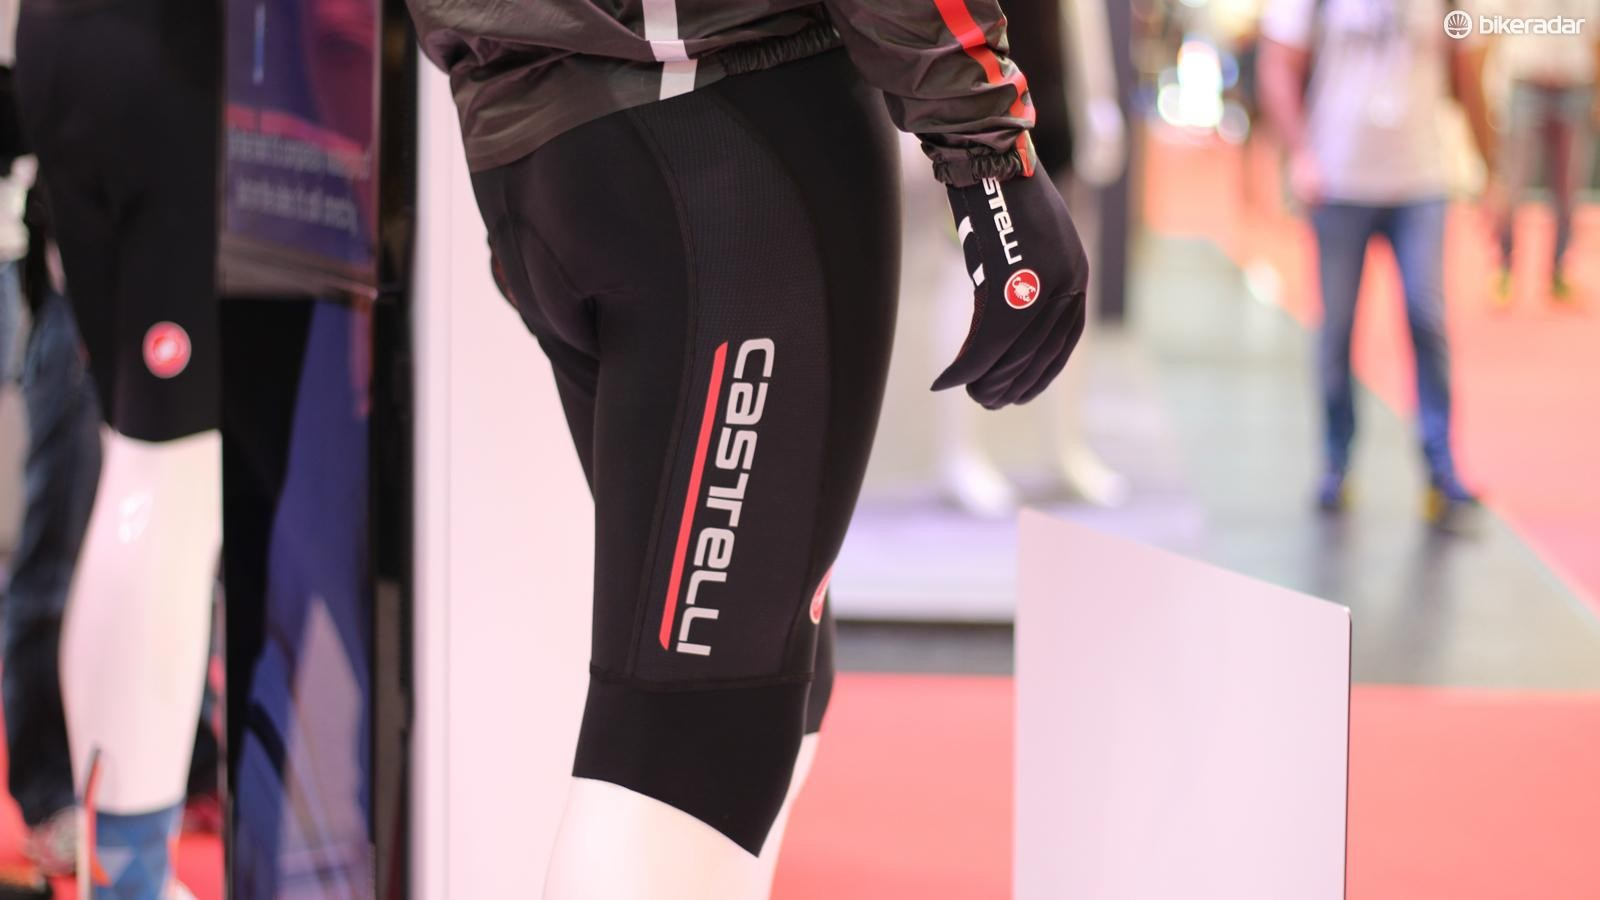 The Omloop Thermal Bib Short isn't quite a knicker, but features thermal knee coverage